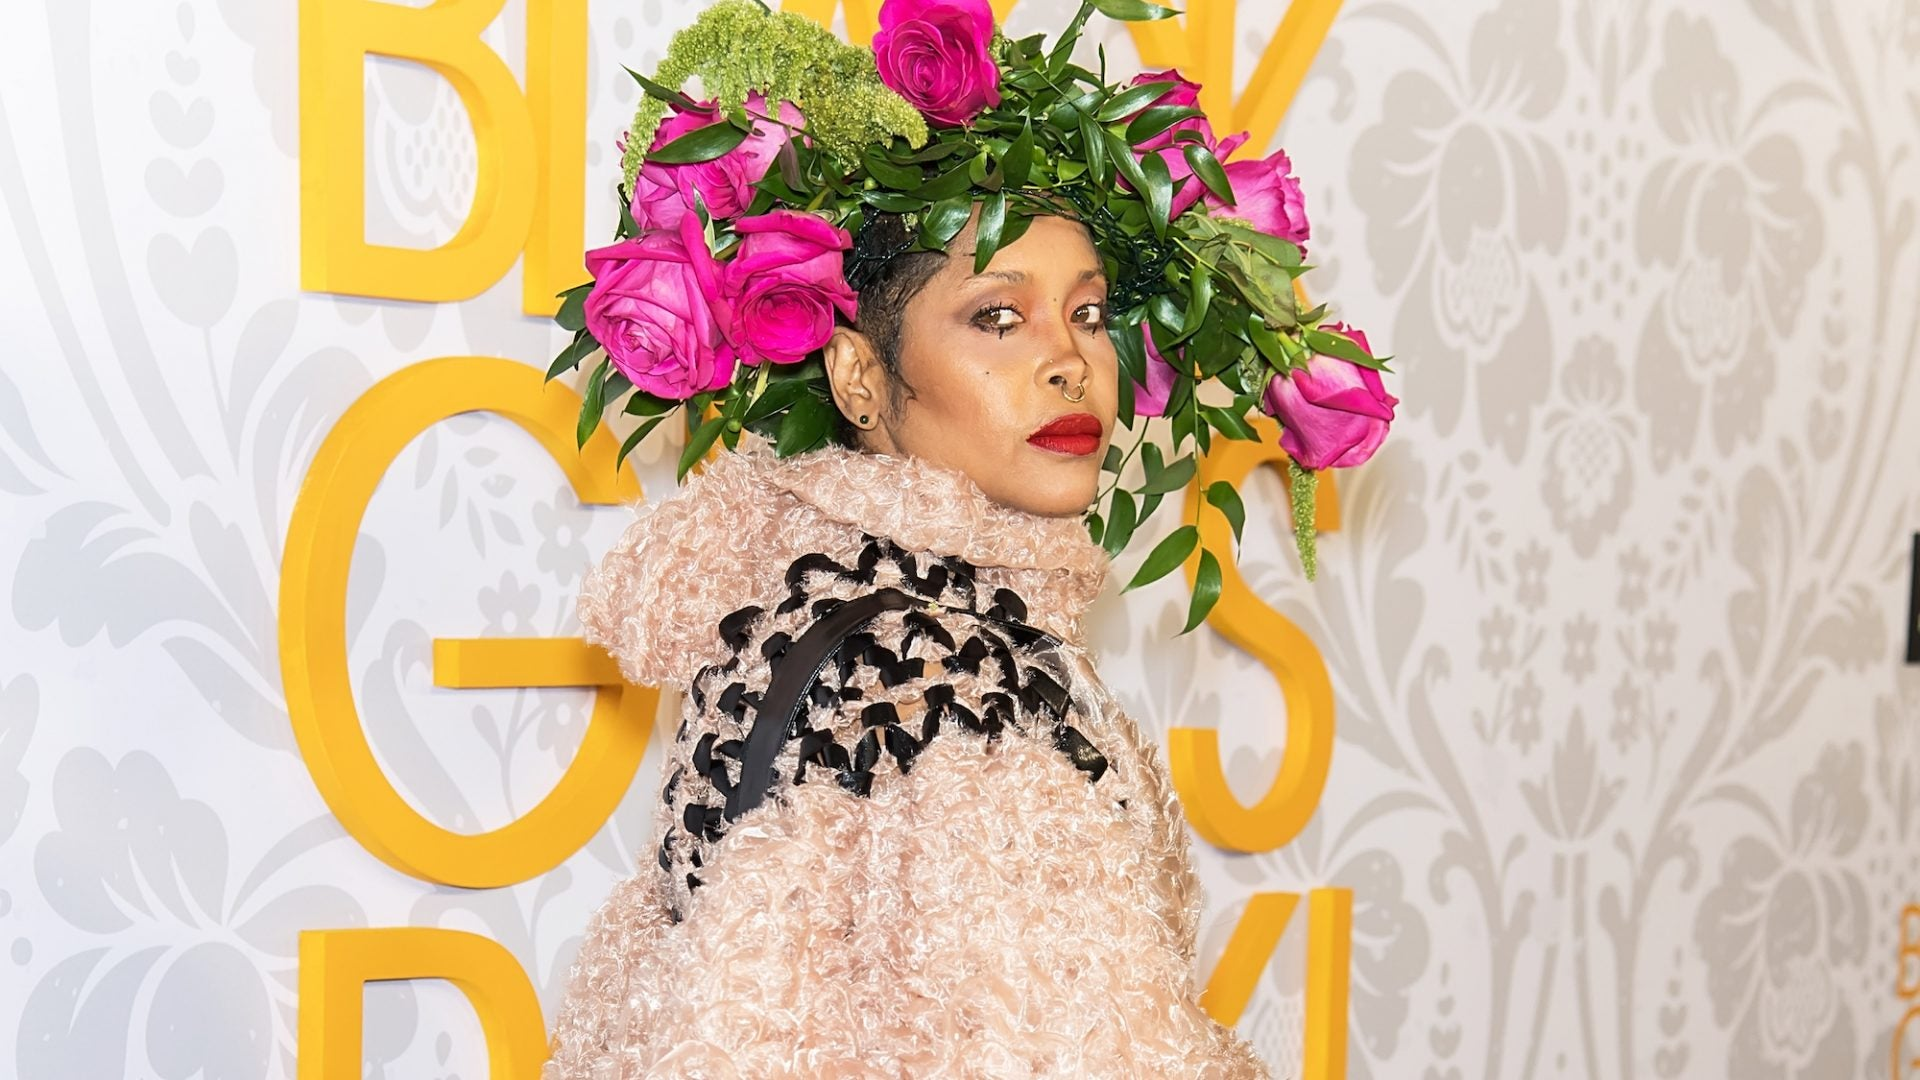 Erykah Badu's Family Celebrates Four Generations With Cute IG Video